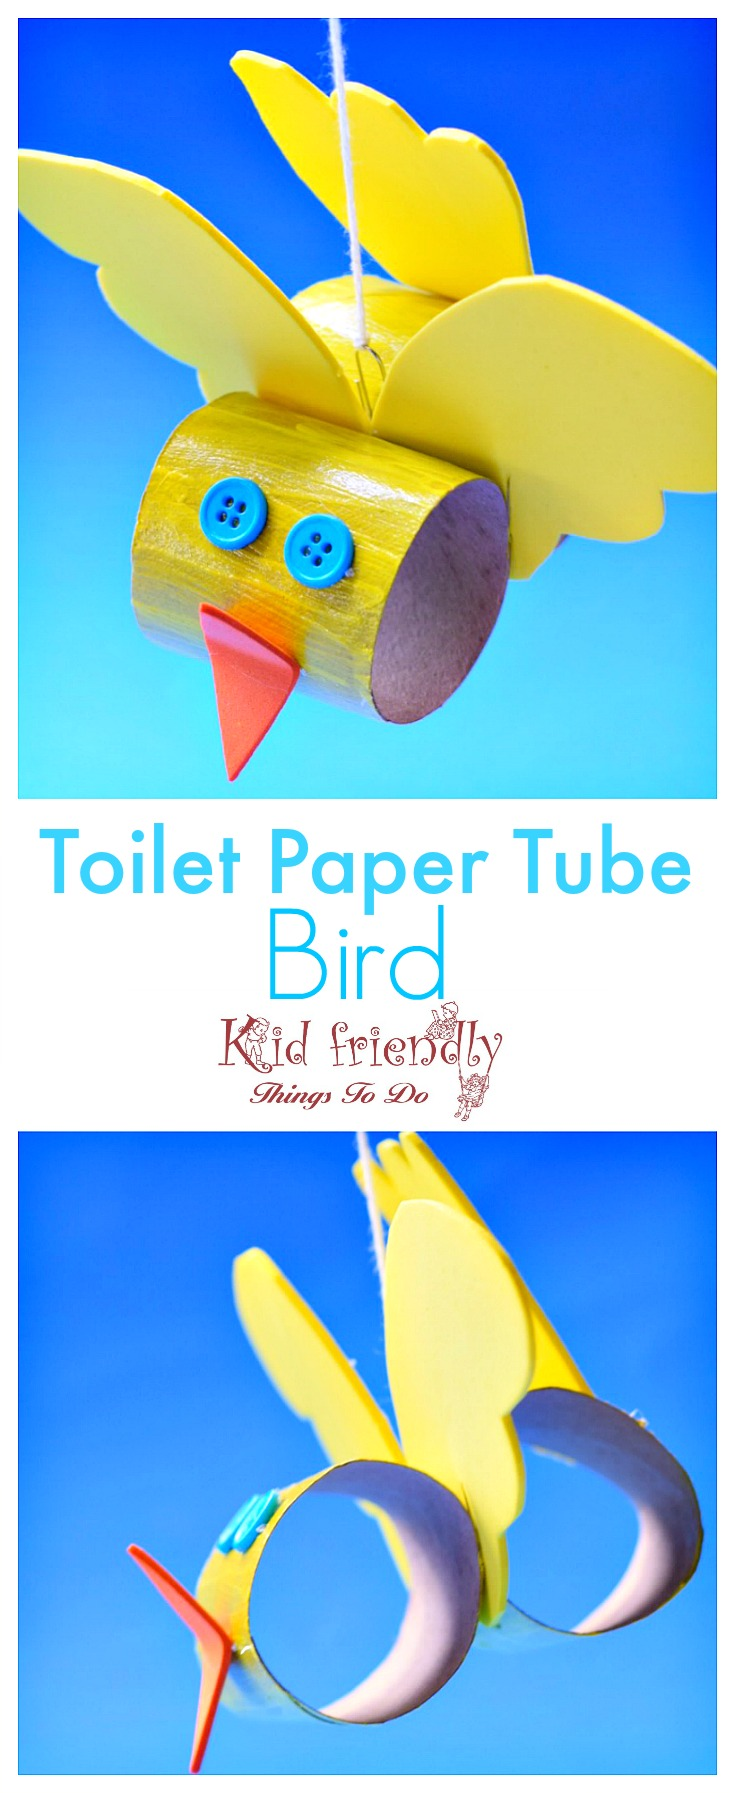 Make A Cute Toilet Paper Tube Bird Craft With Kids - Easy -6799